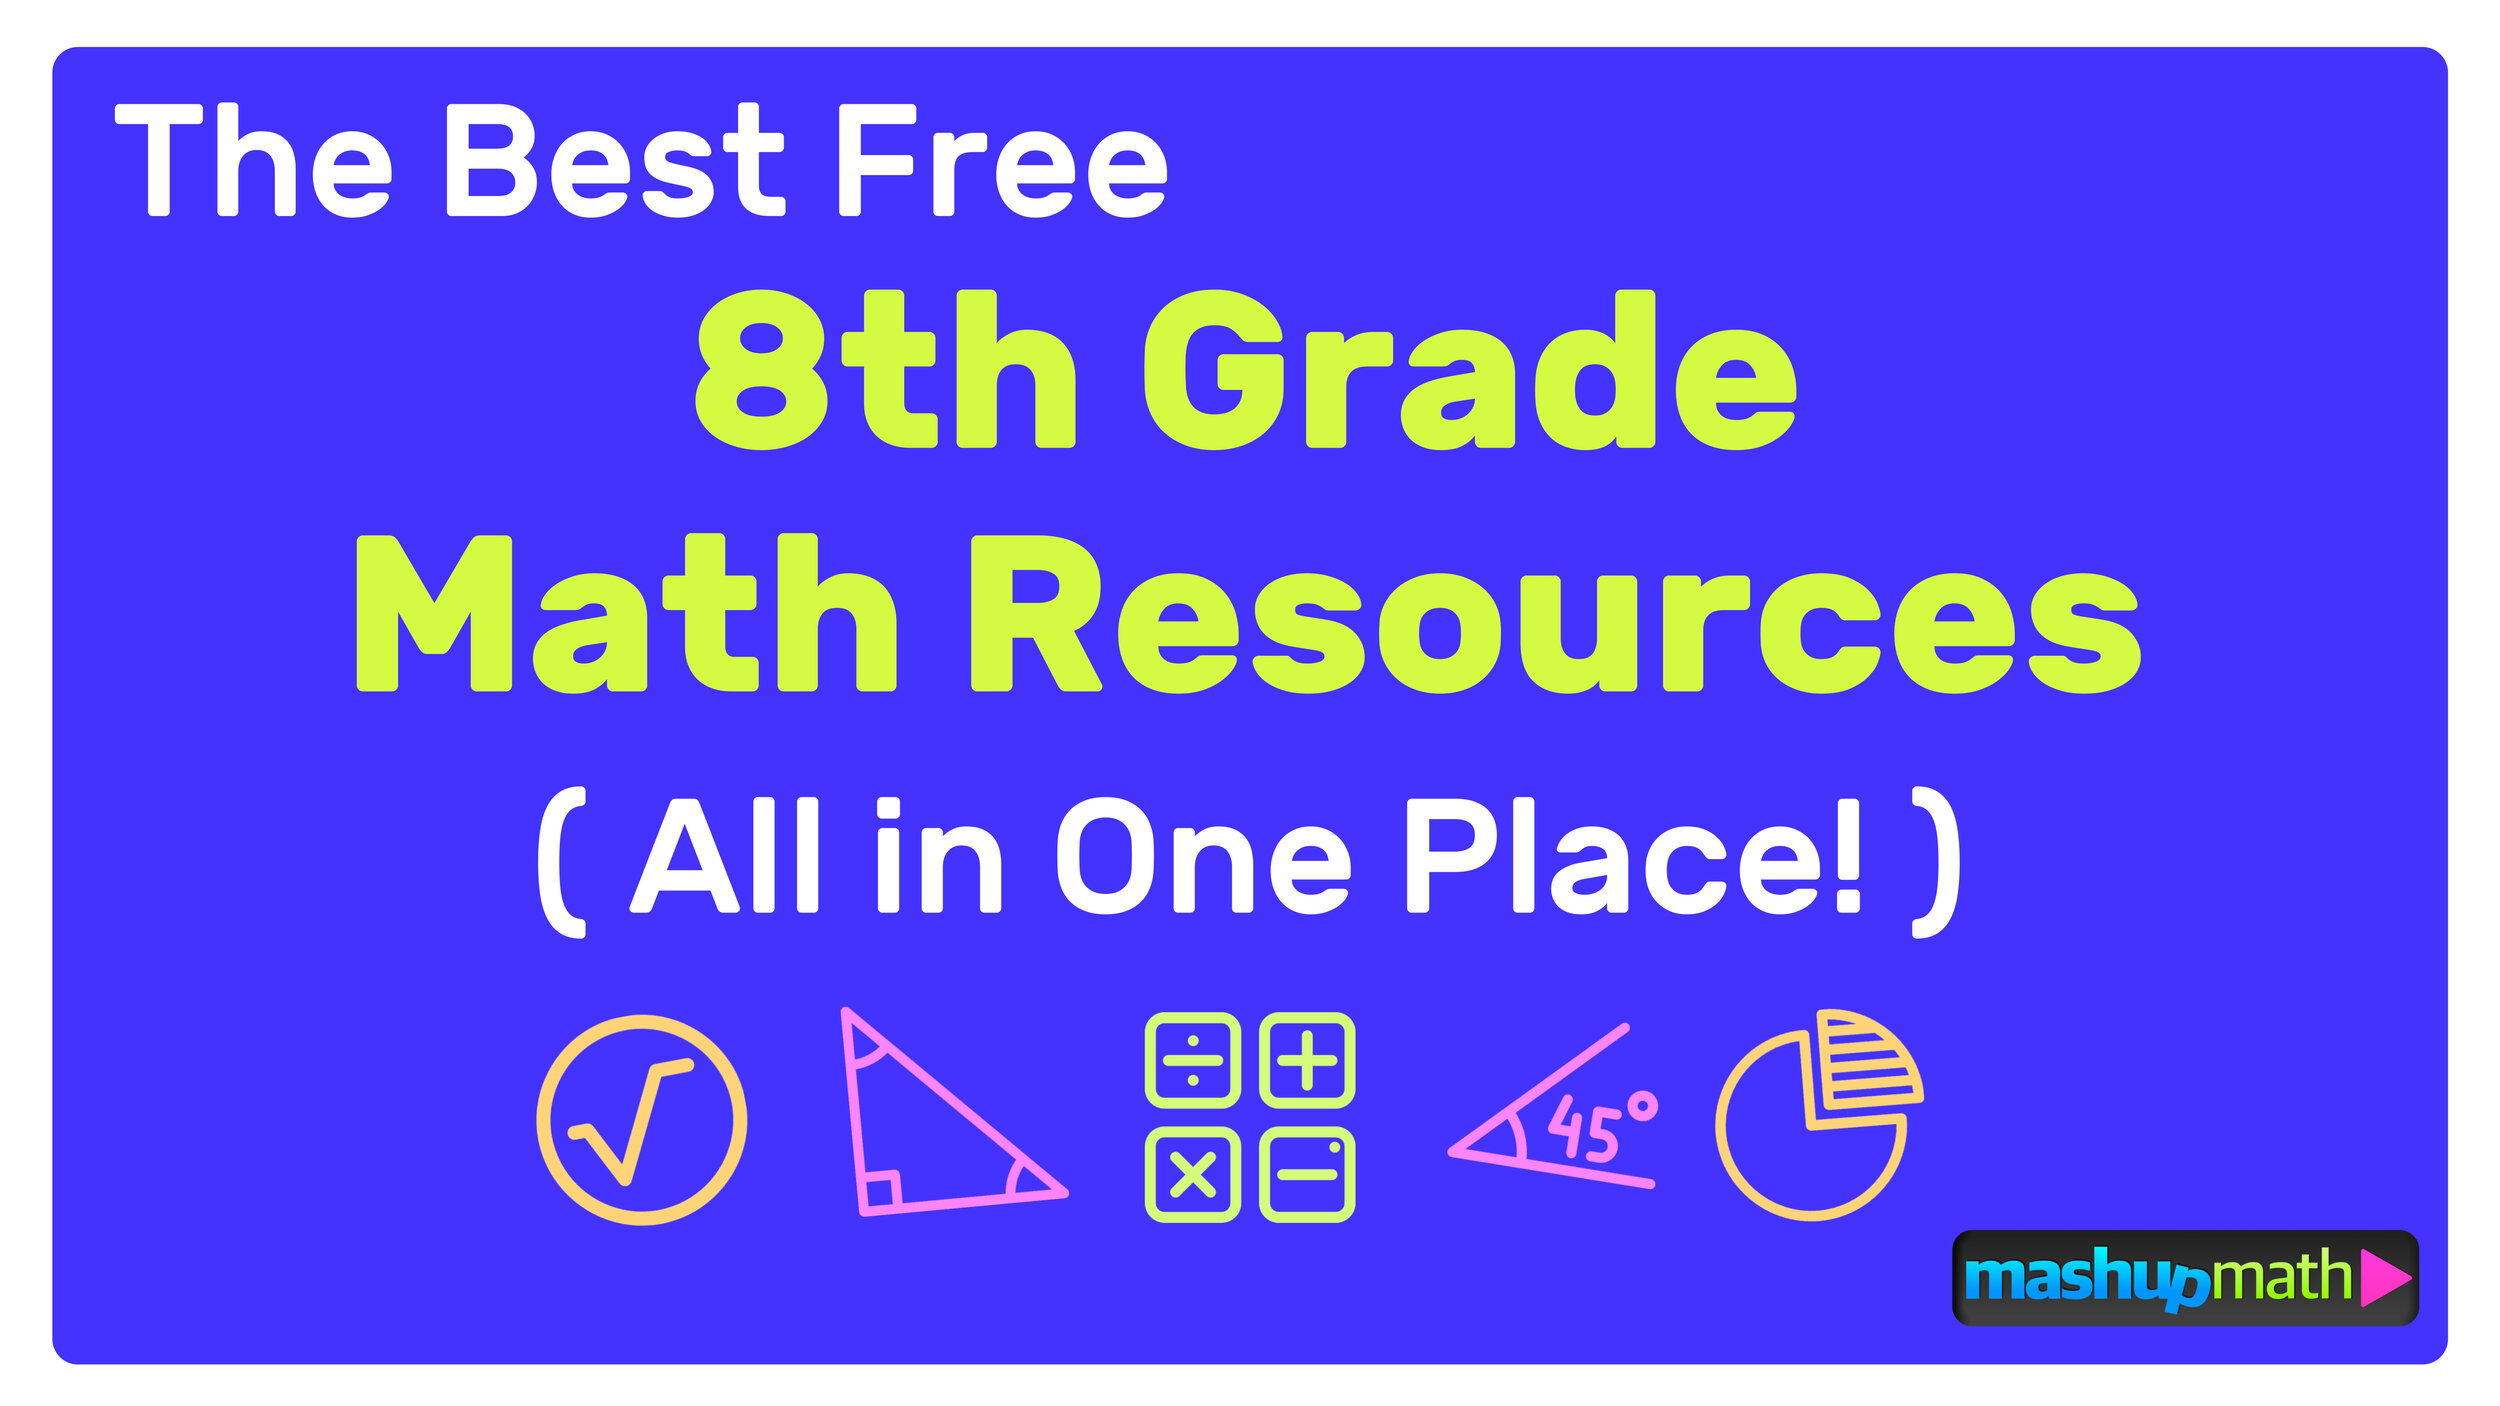 The Best Free 8th Grade Math Resources: Complete List! — Mashup Math [ 844 x 1500 Pixel ]